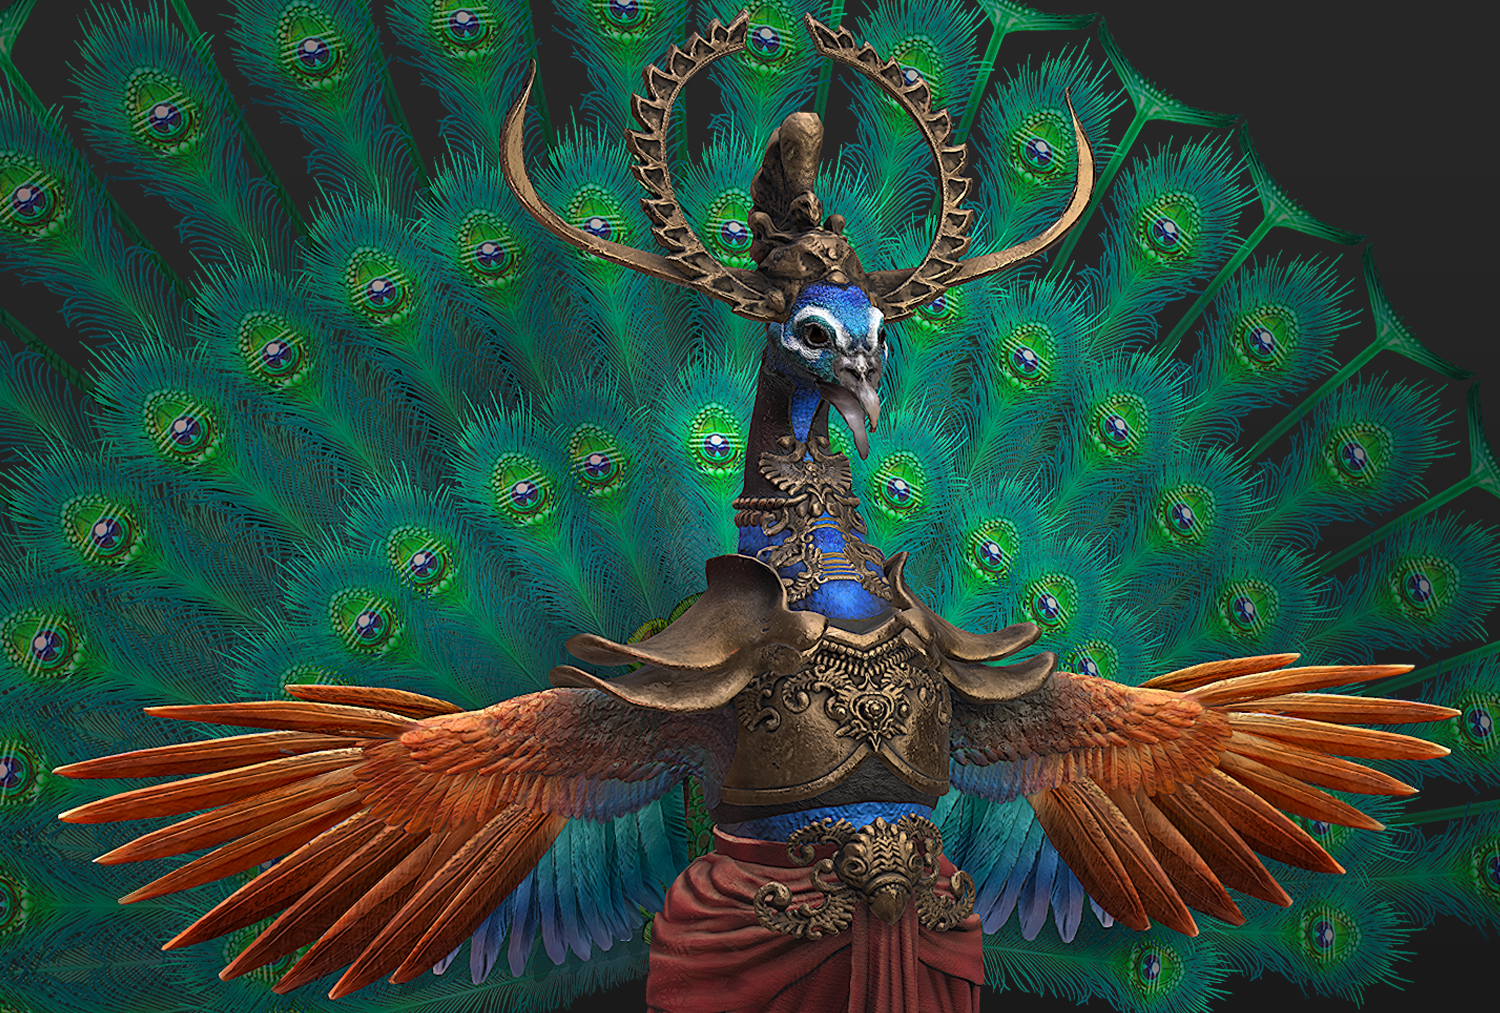 Peacock Warrior